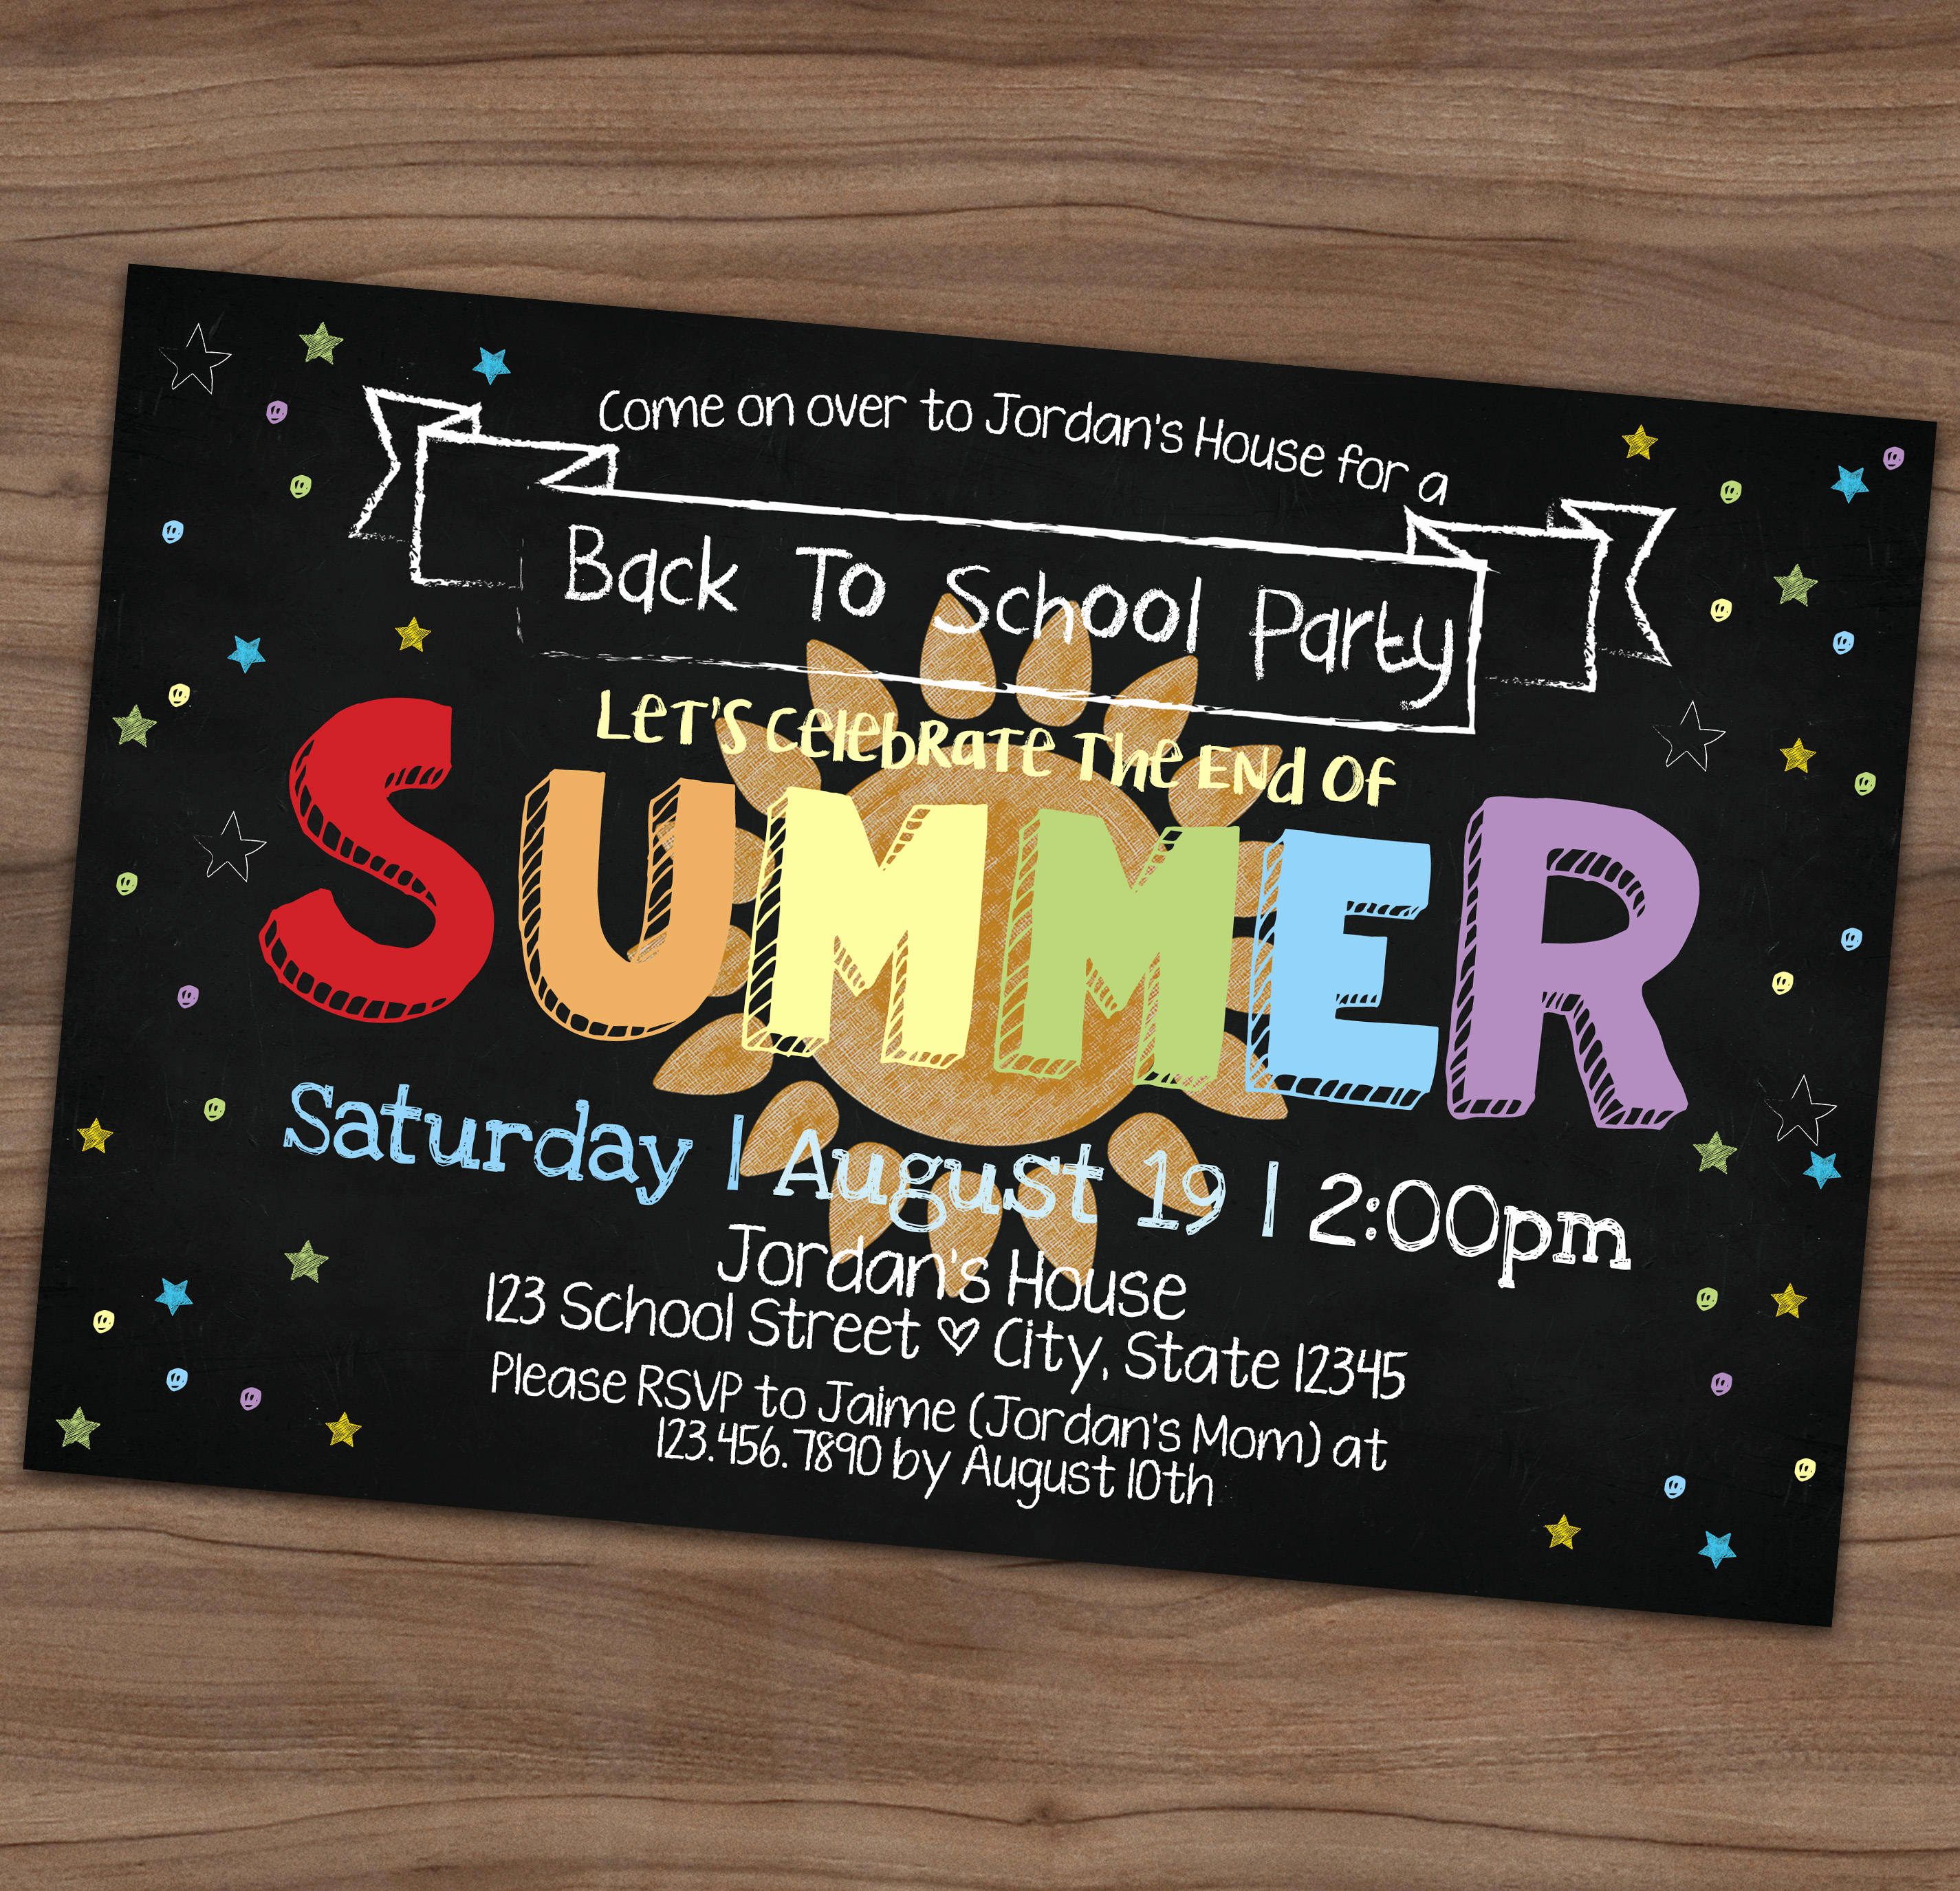 End Of Summer Party Invitation Elegant Back to School Party Invitation End Summer Vacation